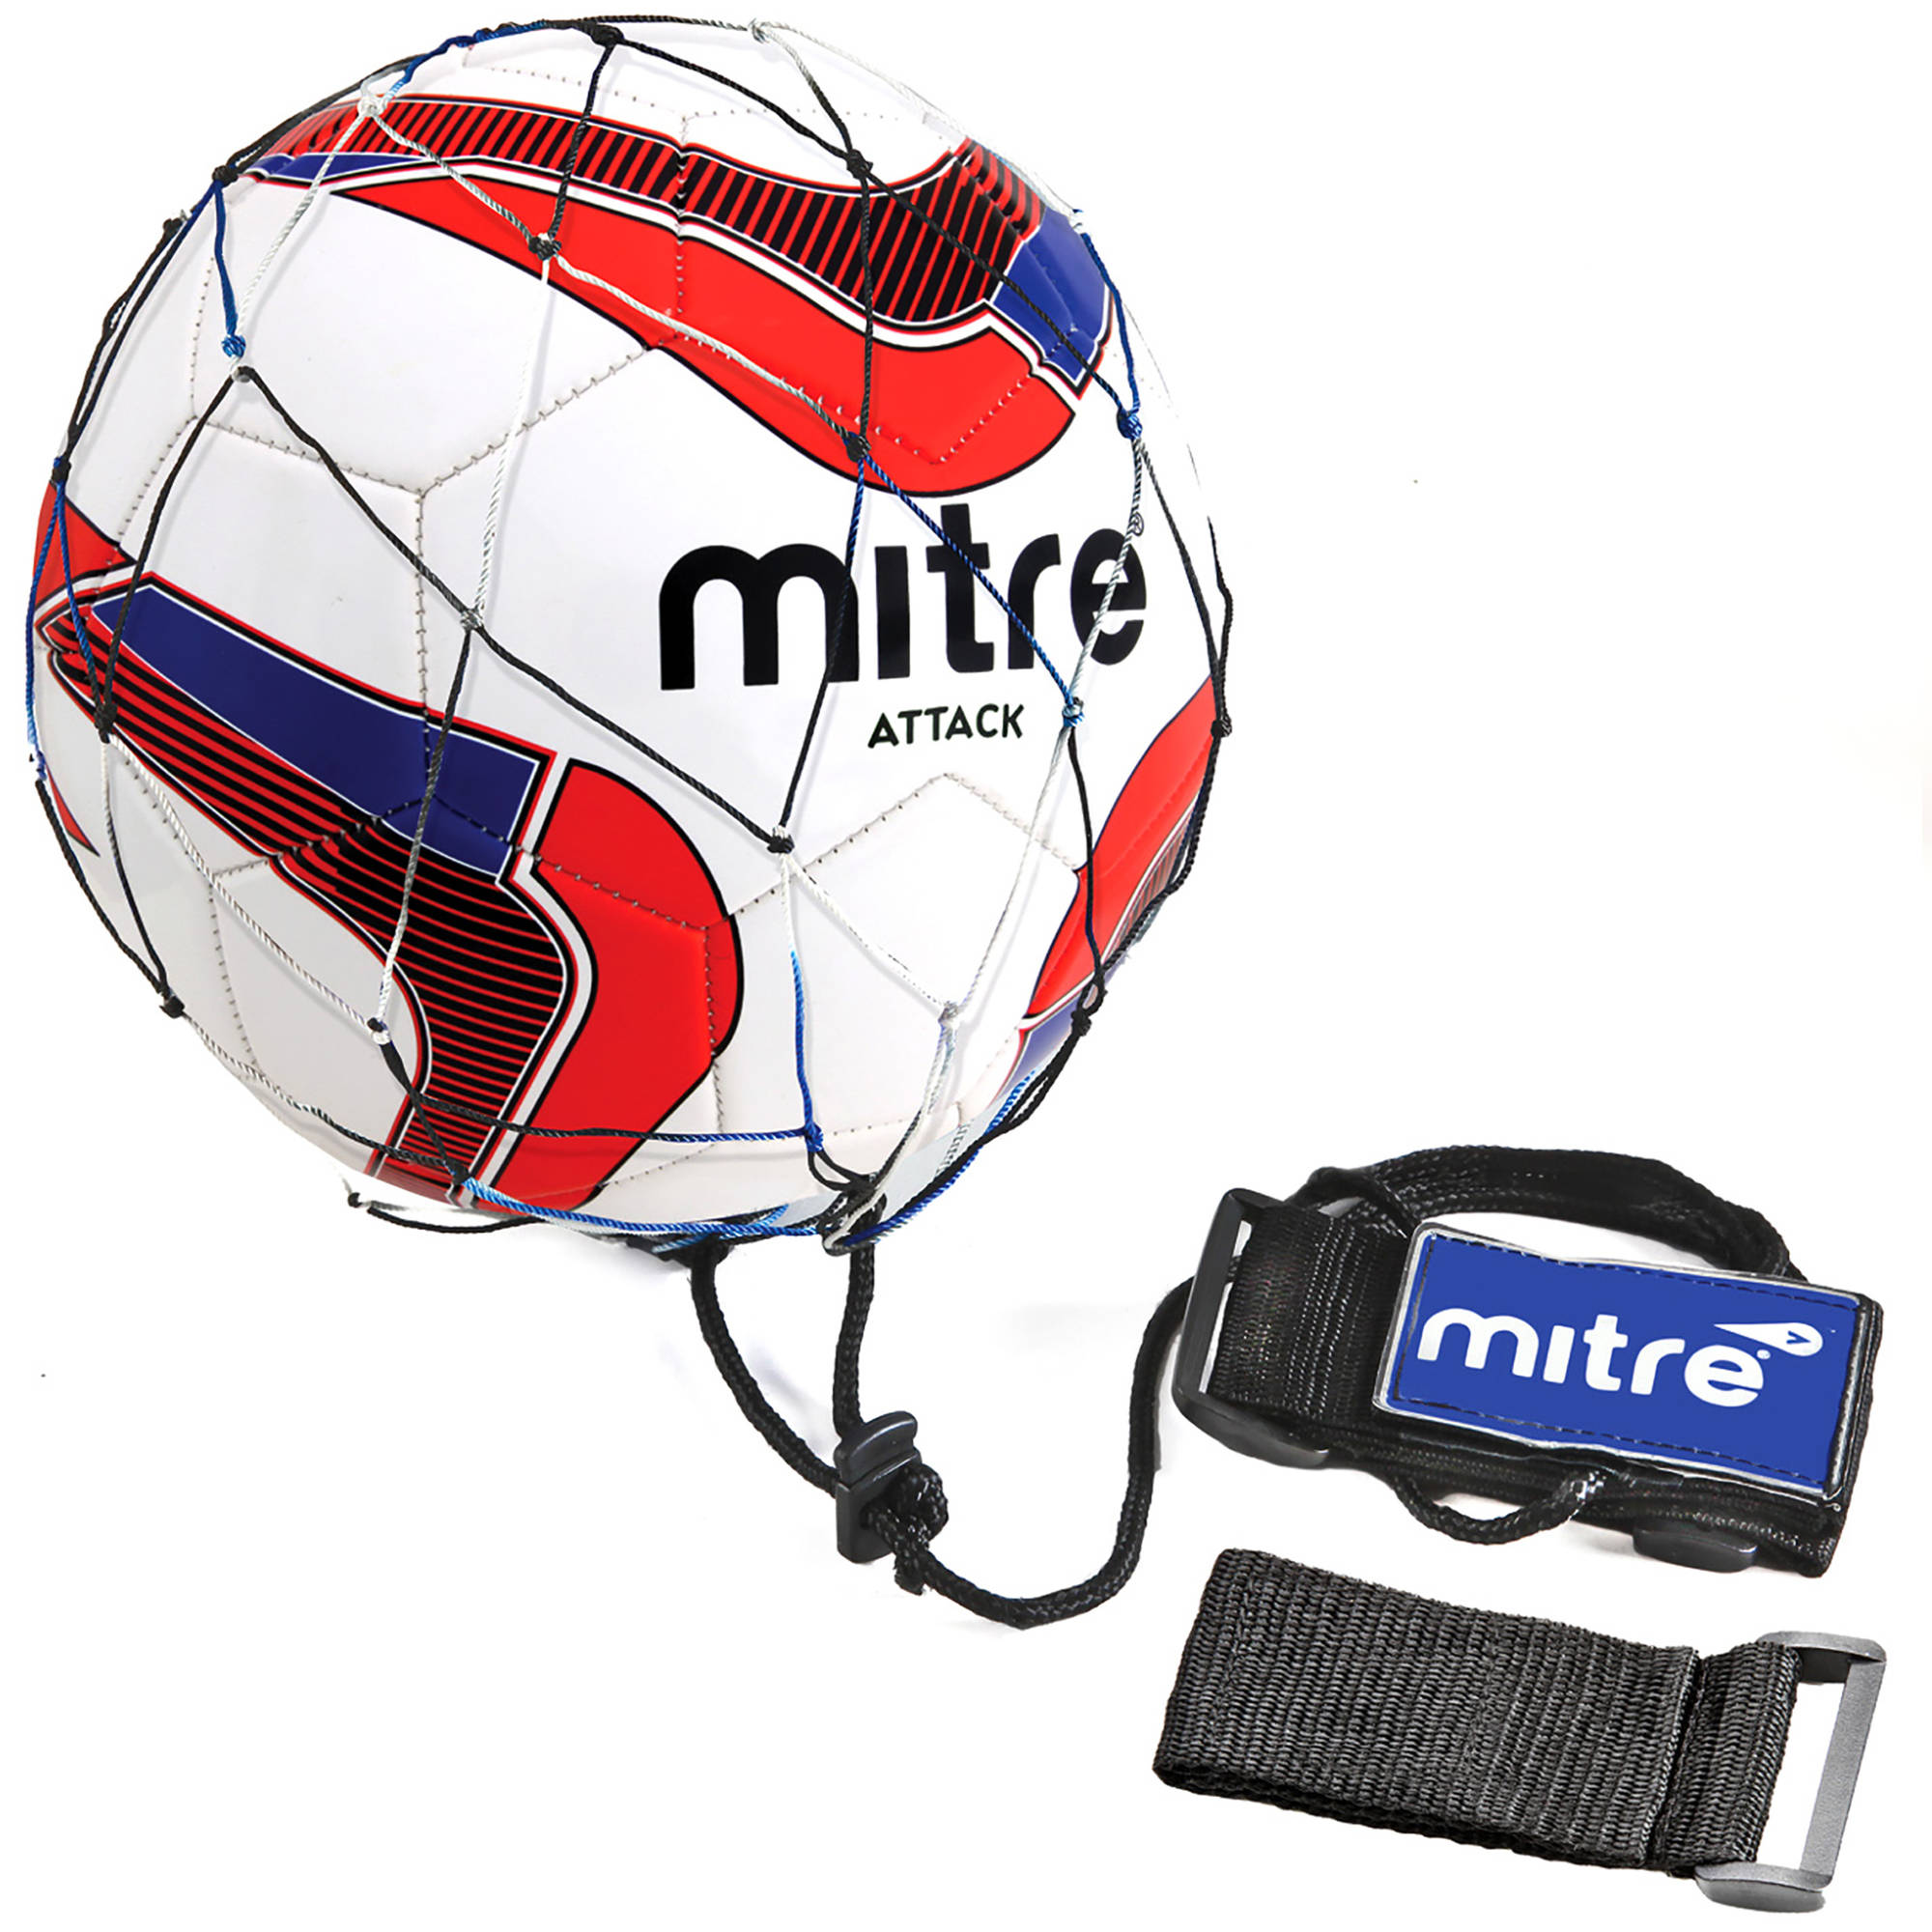 Soccer Bathroom Accessories Mitre Game Rogue Soccer Ball Walmartcom